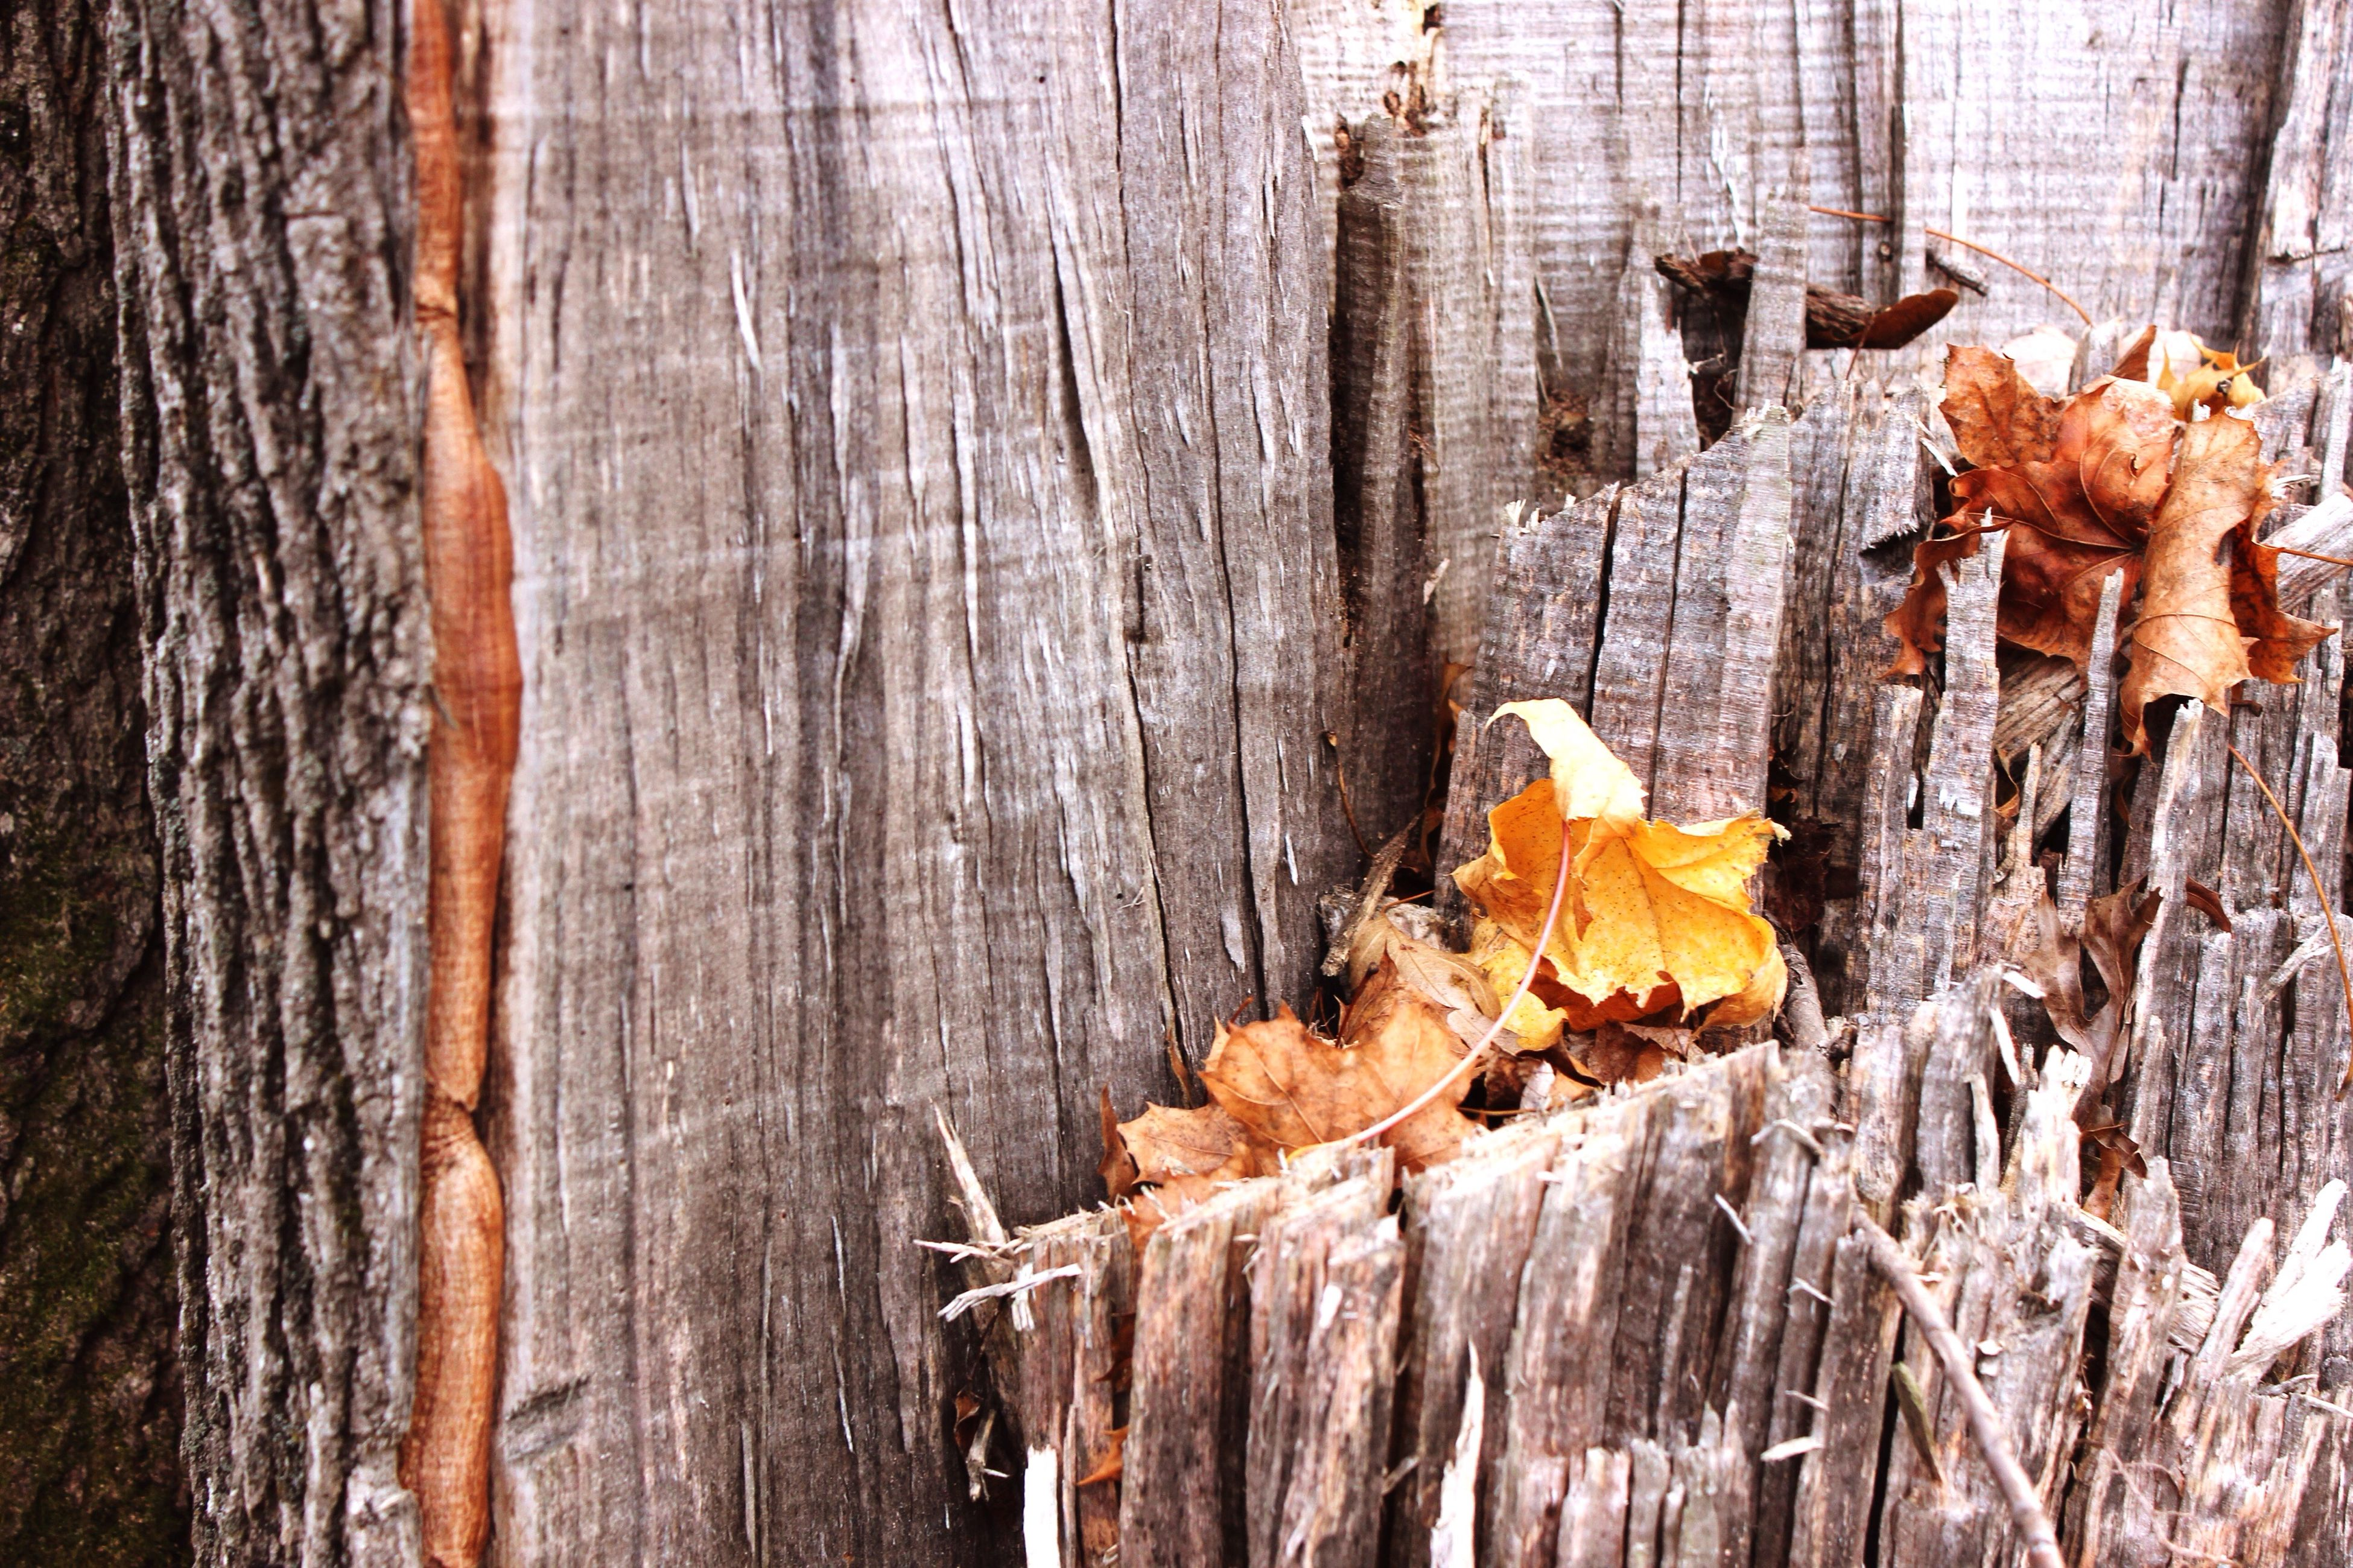 wood - material, close-up, textured, tree trunk, dry, wood, natural pattern, nature, brown, autumn, orange color, natural condition, wooden, bark, rough, no people, aging process, full frame, tree stump, weathered